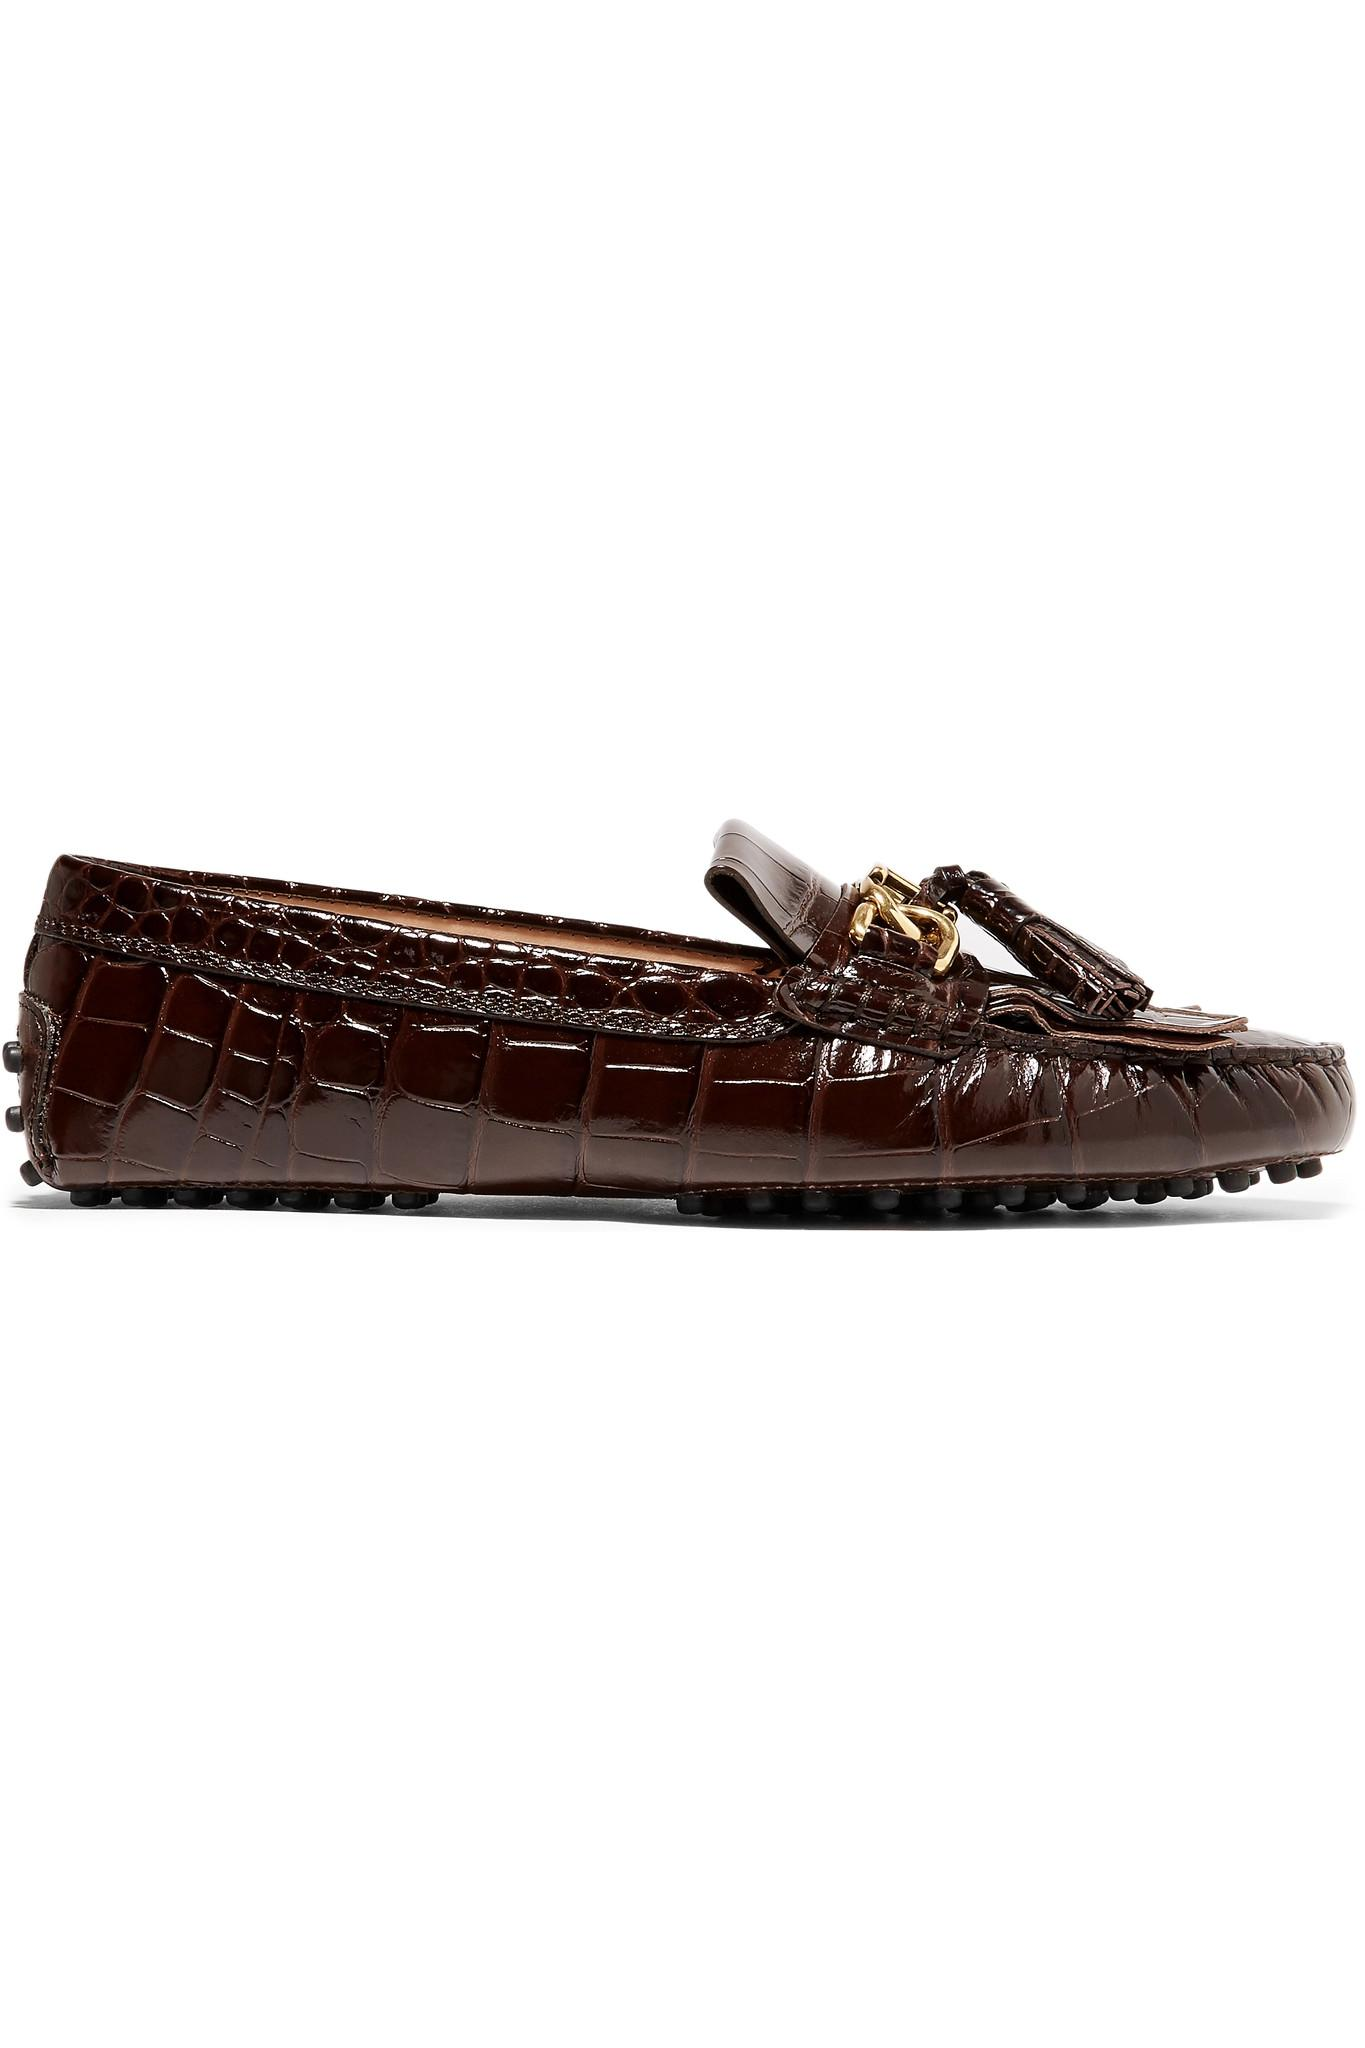 00ba20ce06a Lyst - Tod s Gommino Tasseled Croc-effect Patent-leather Loafers in ...